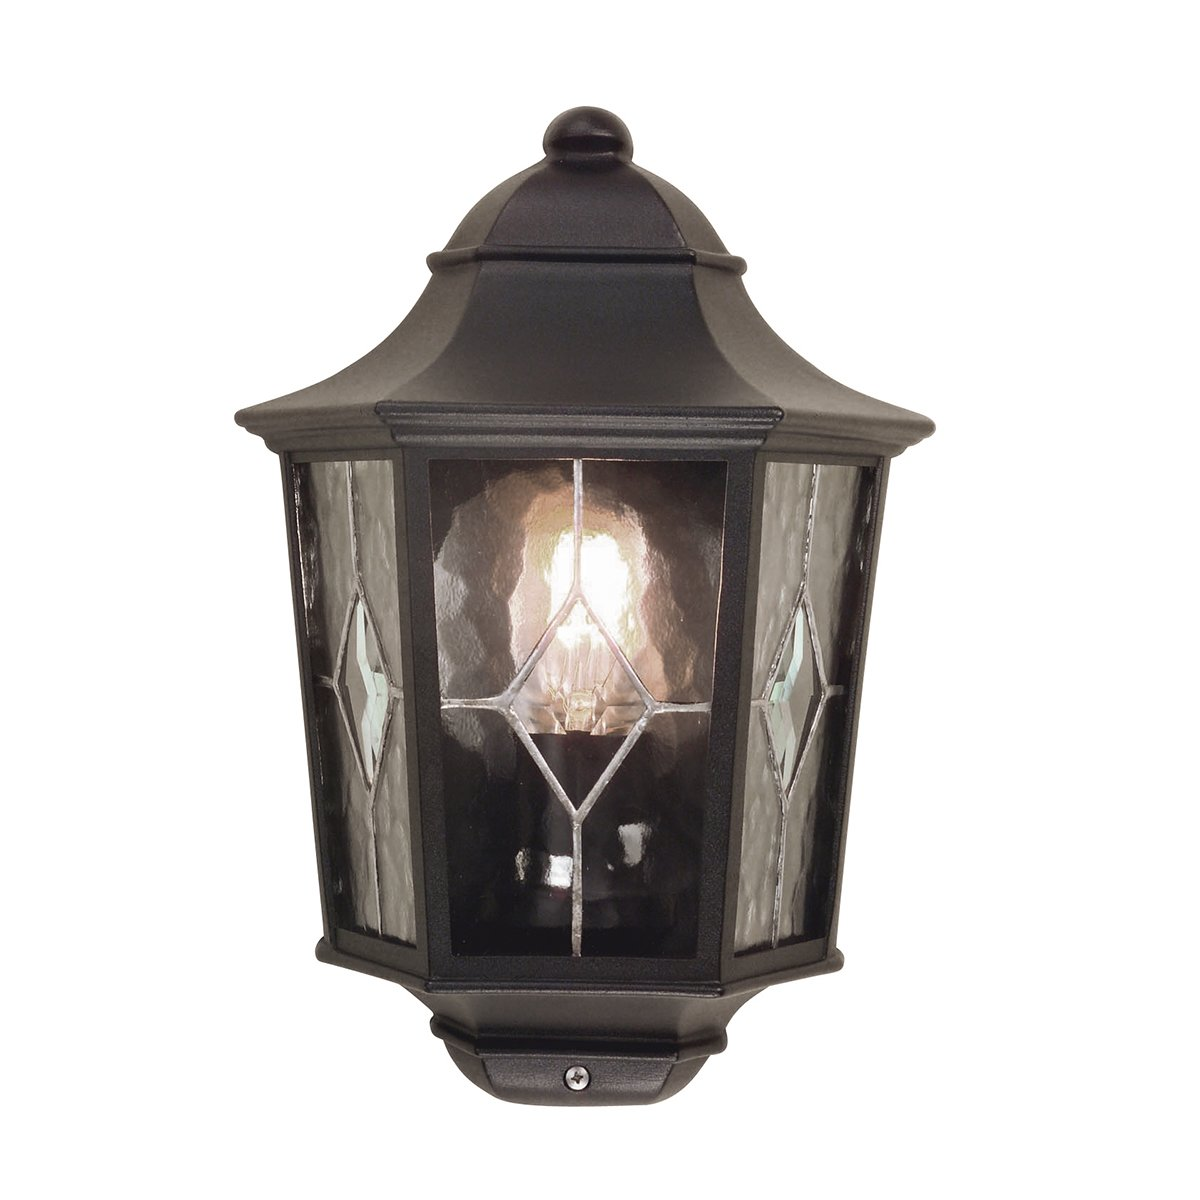 Elstead NR7-2 Norfolk Half Leaded Lantern in Black